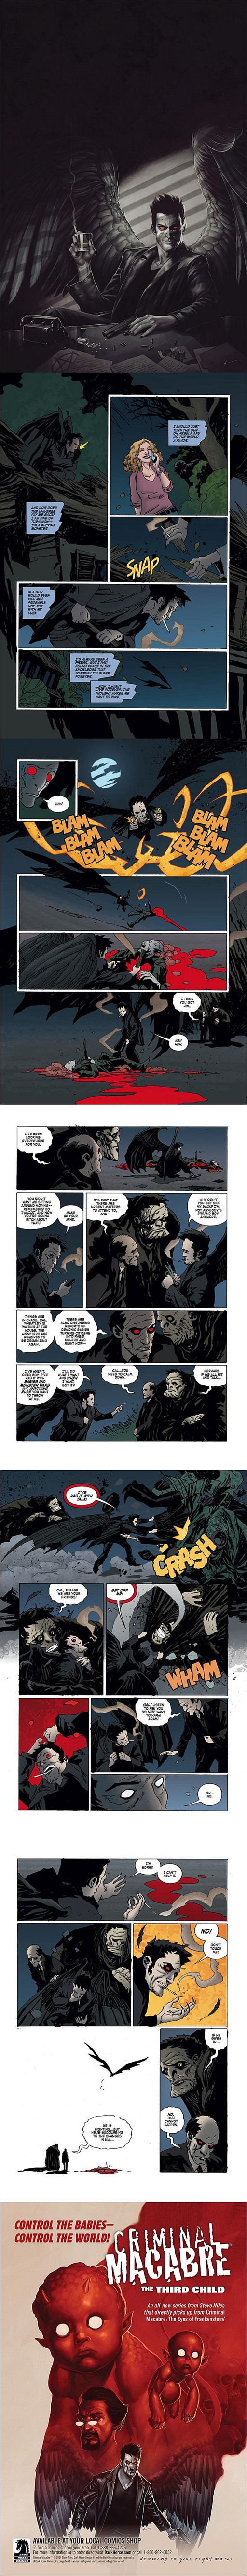 Criminal Macabre: The Third Child #1 Preview